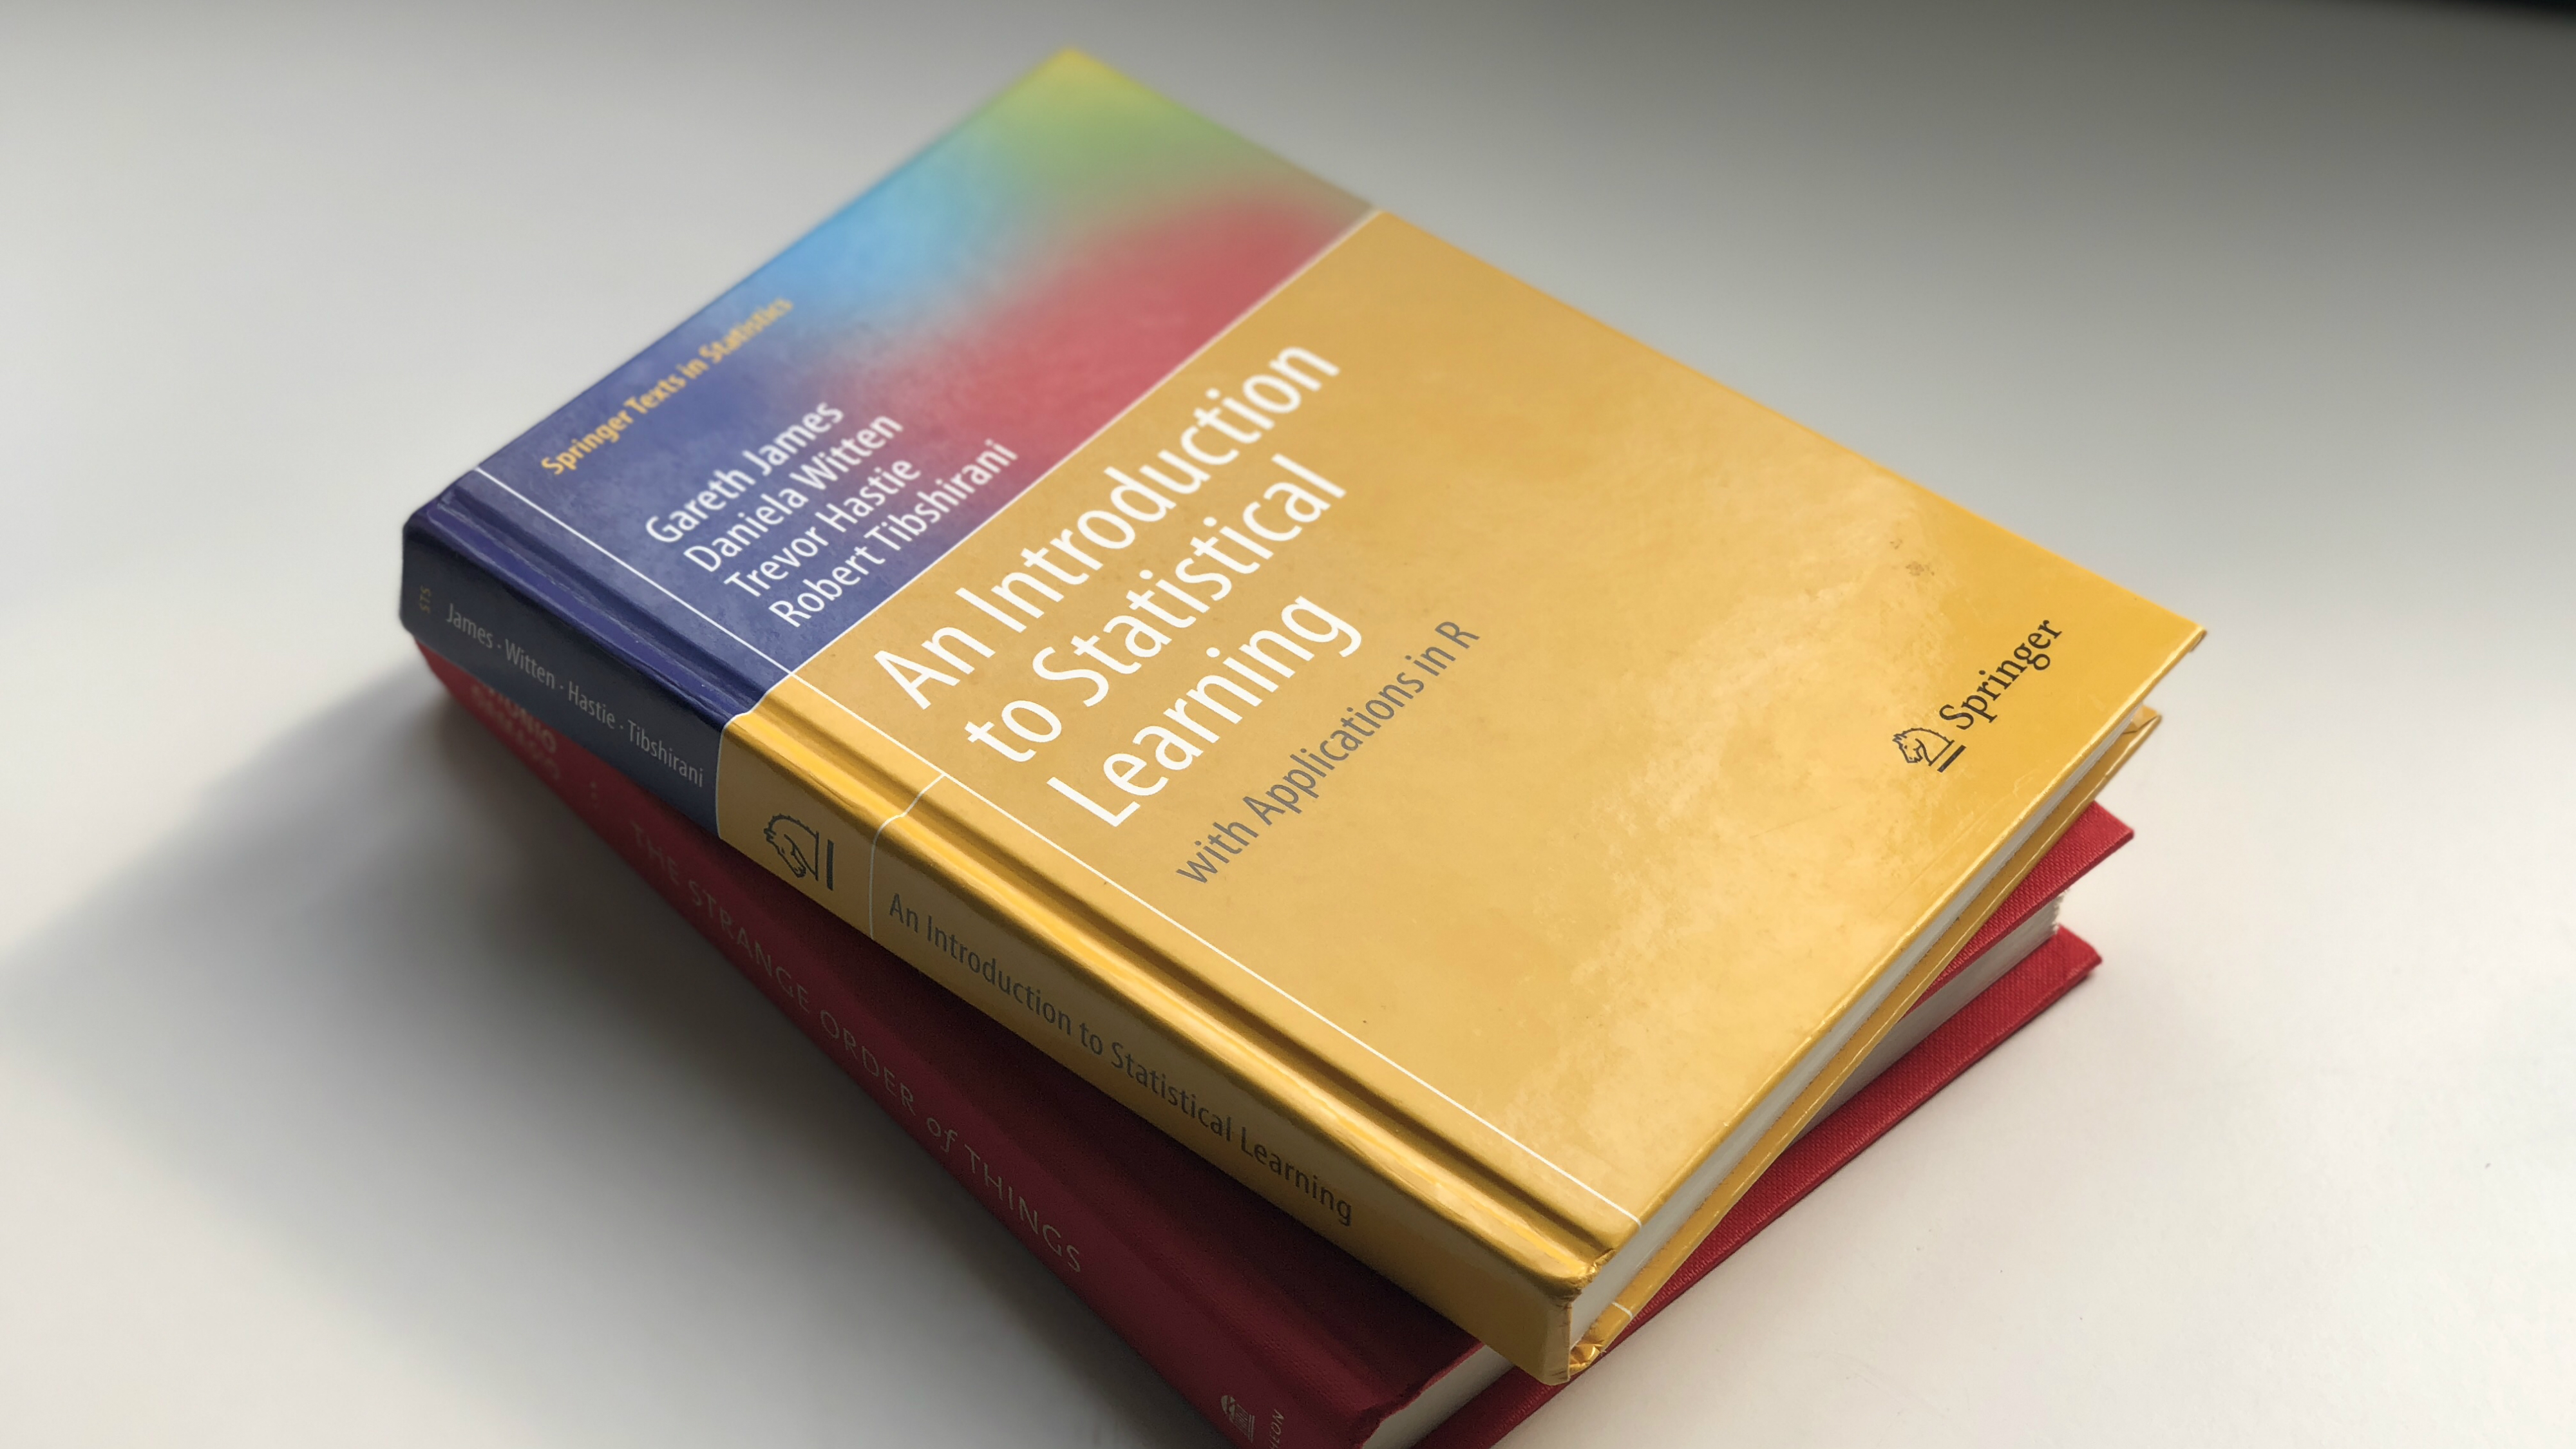 An image of a book.